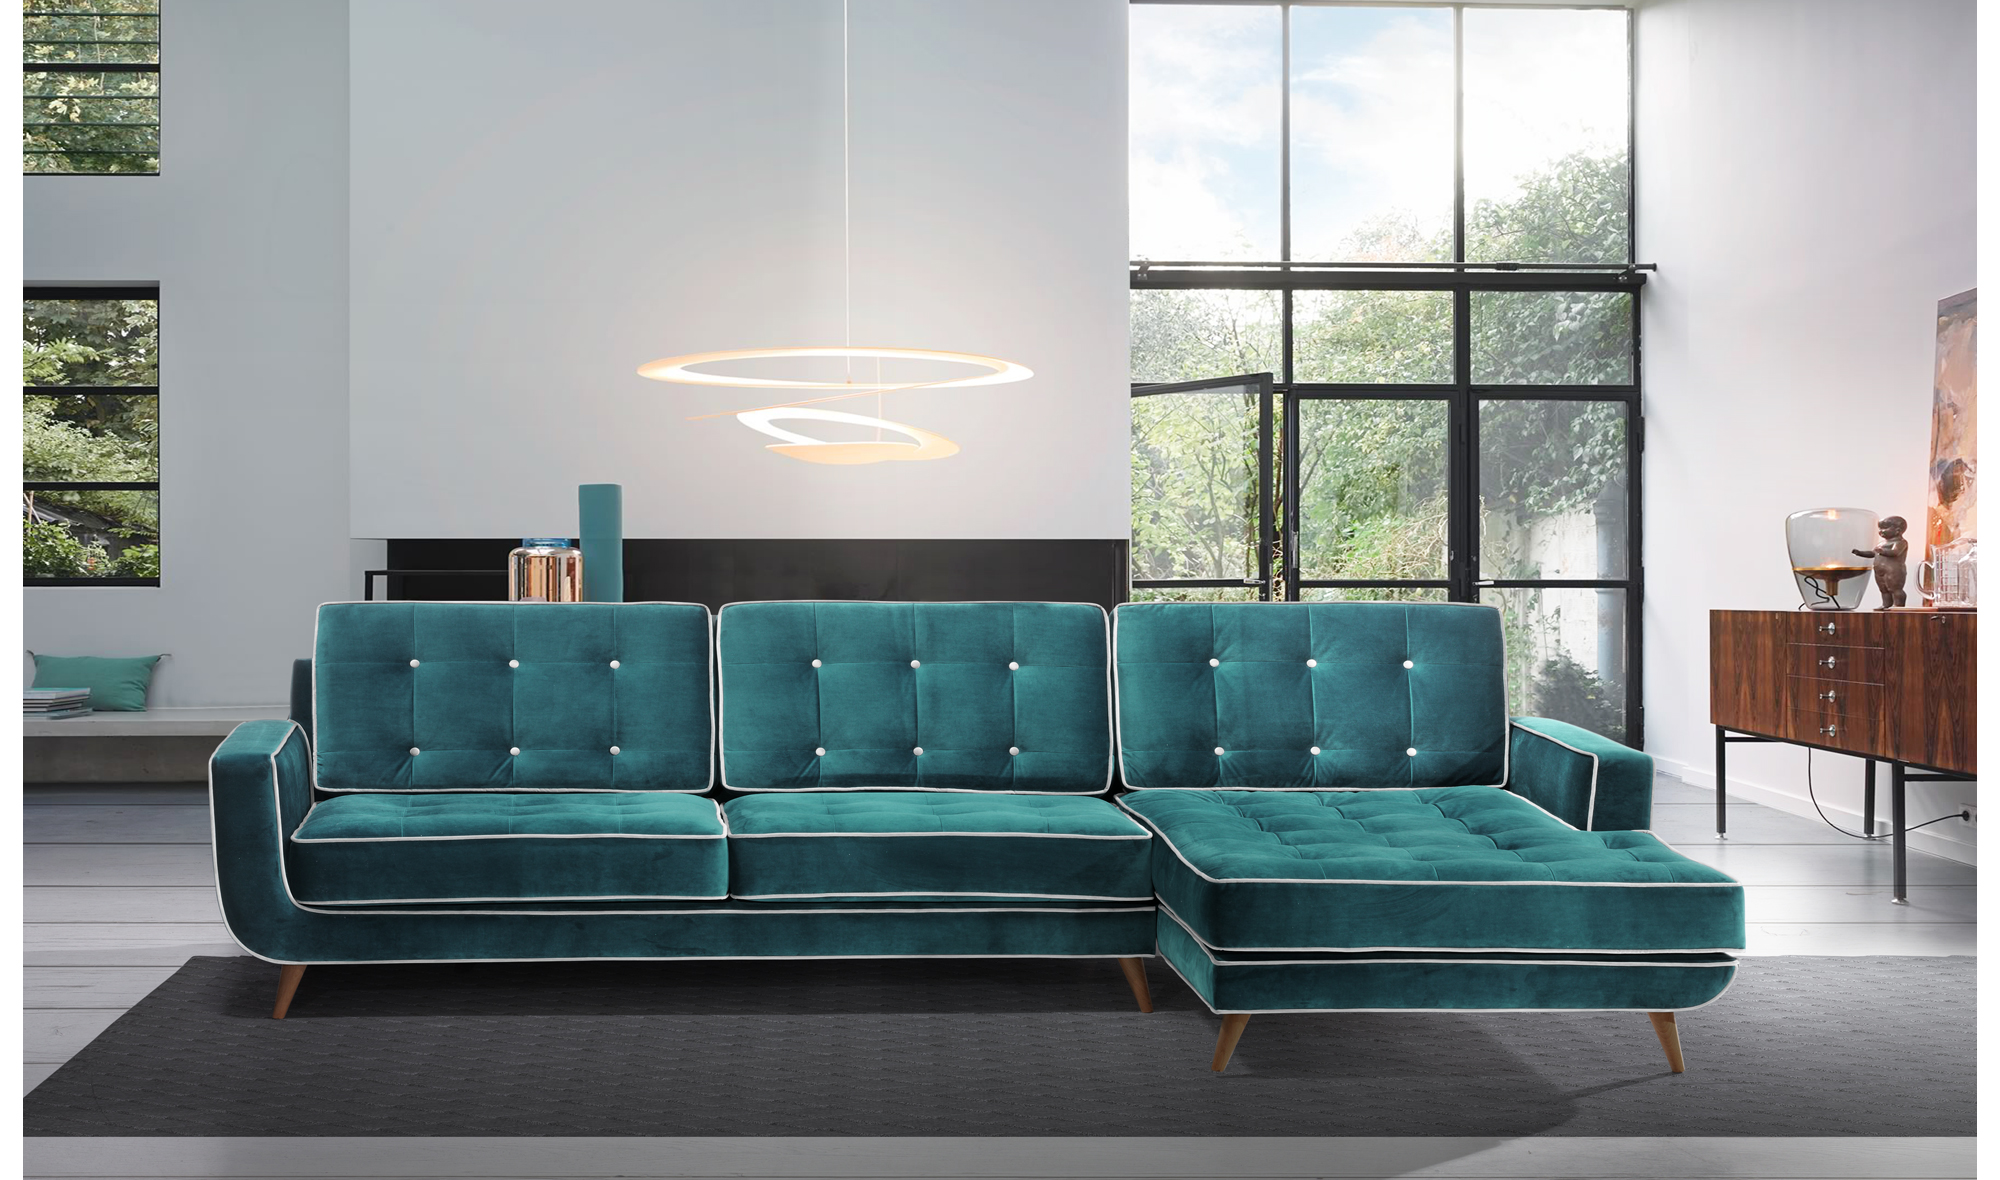 Sof con chaise longue retro sterling cooper en for Los sofas mas baratos